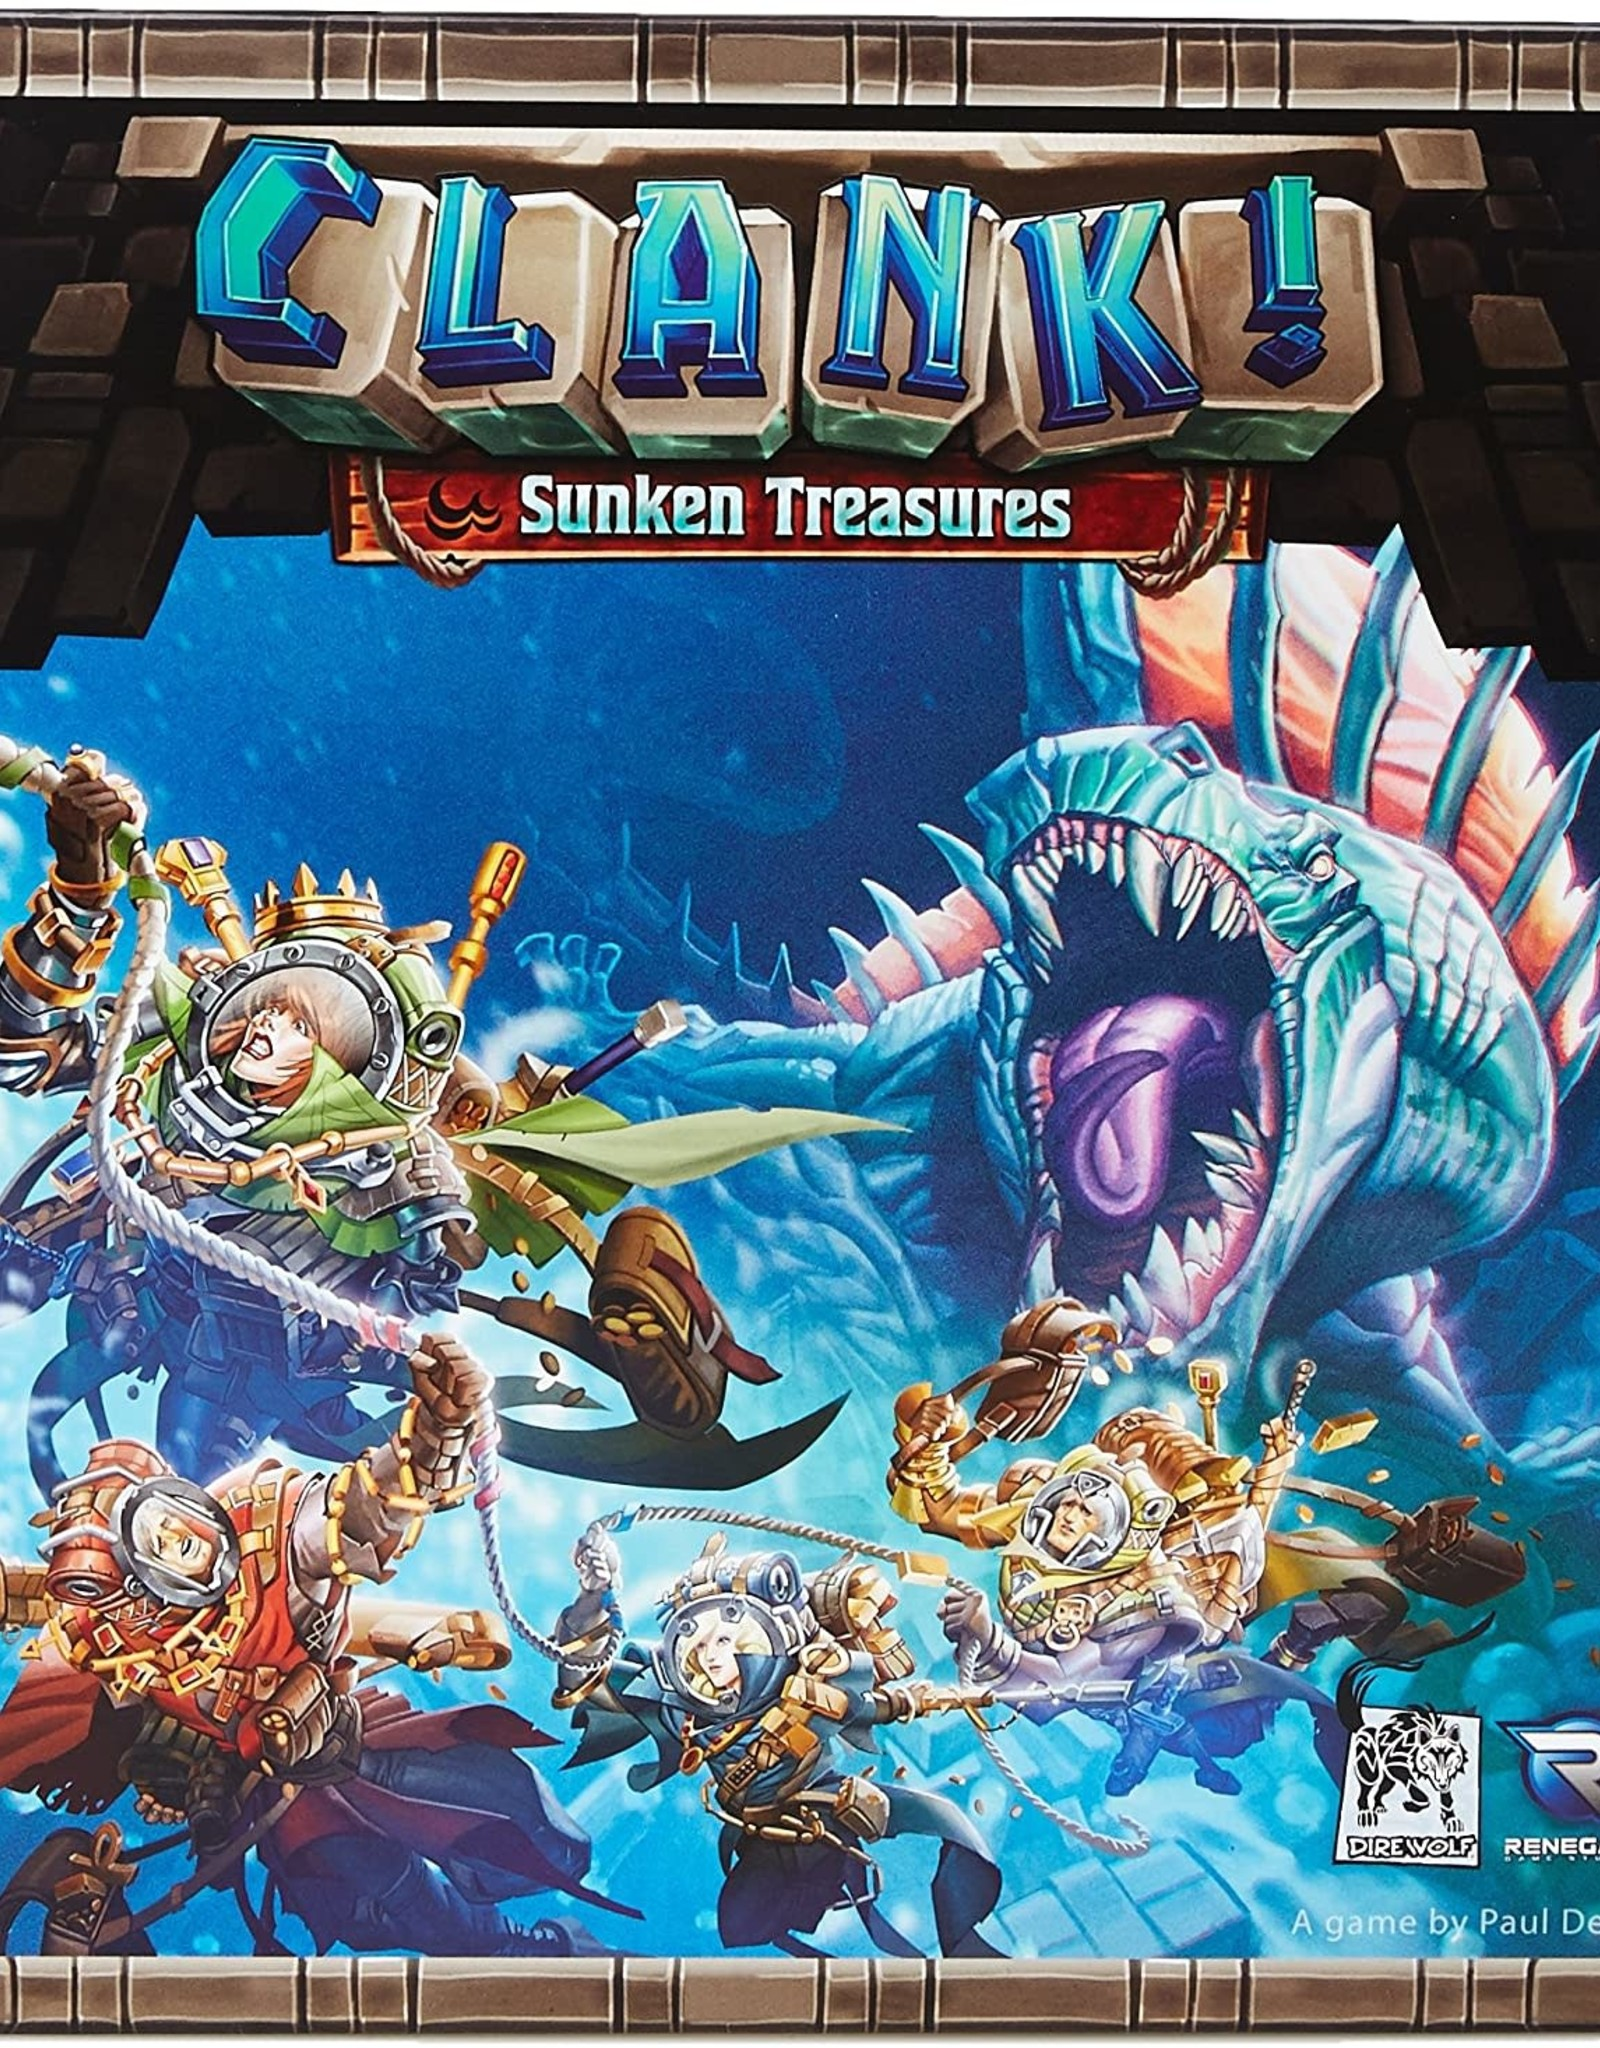 Renegade Game Studios Clank! Sunken Treasures